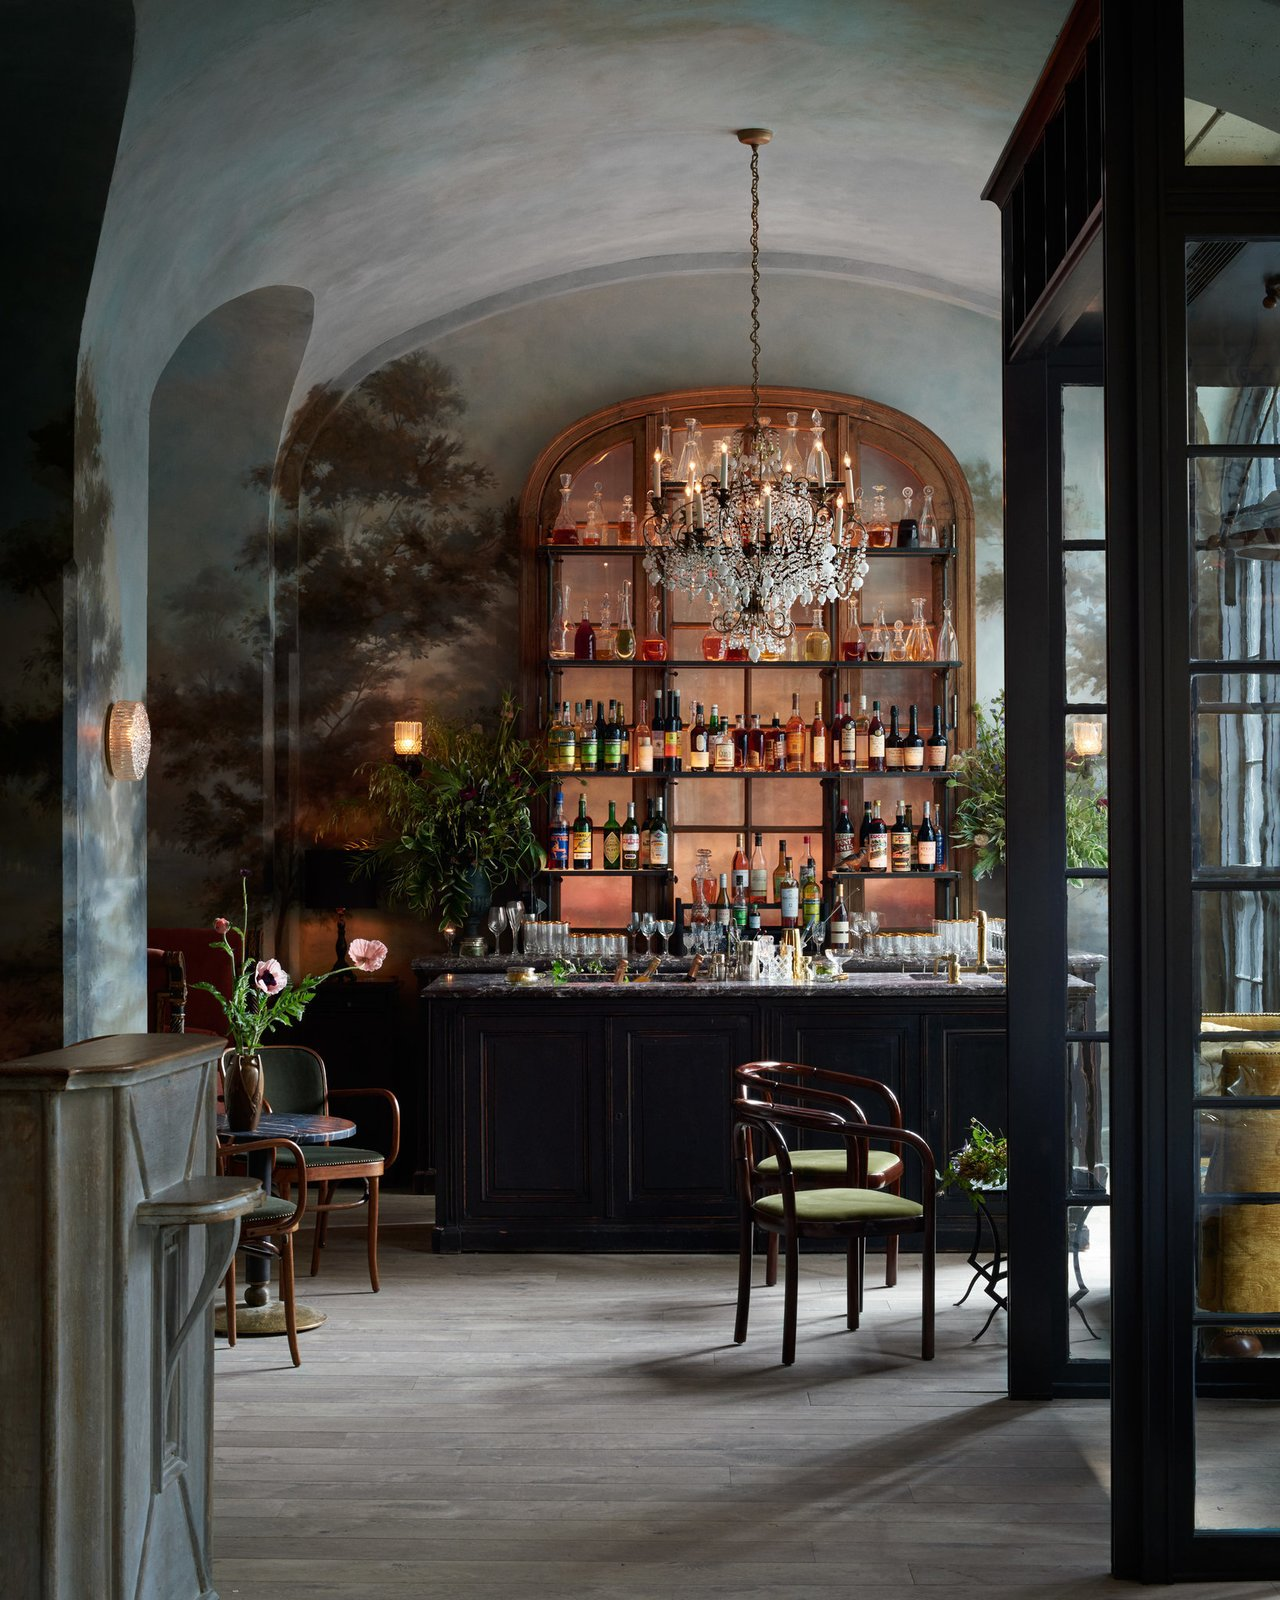 Le Coucou restaurant in New York City by Roman & Williams. Courtesy of Roman & Williams.  Hospitality Favorites by Allie Weiss